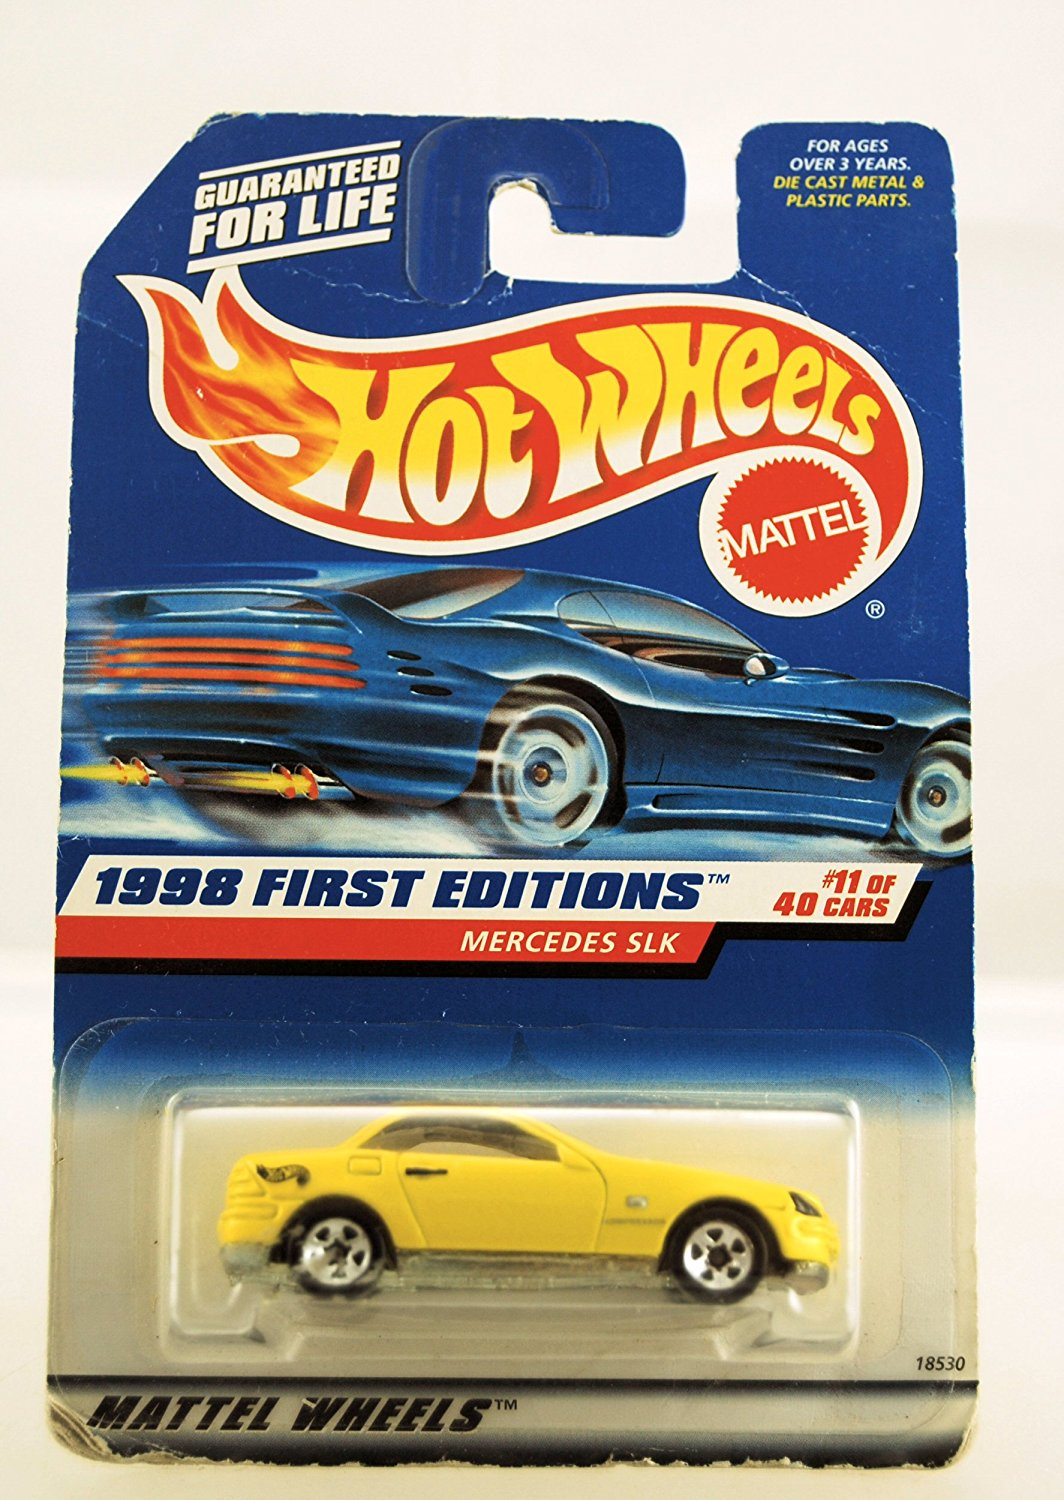 Hot Wheels 1998 First Editions Mercedes SLK Yellow #11 of 40 Cars Die Cast Collector #646... by